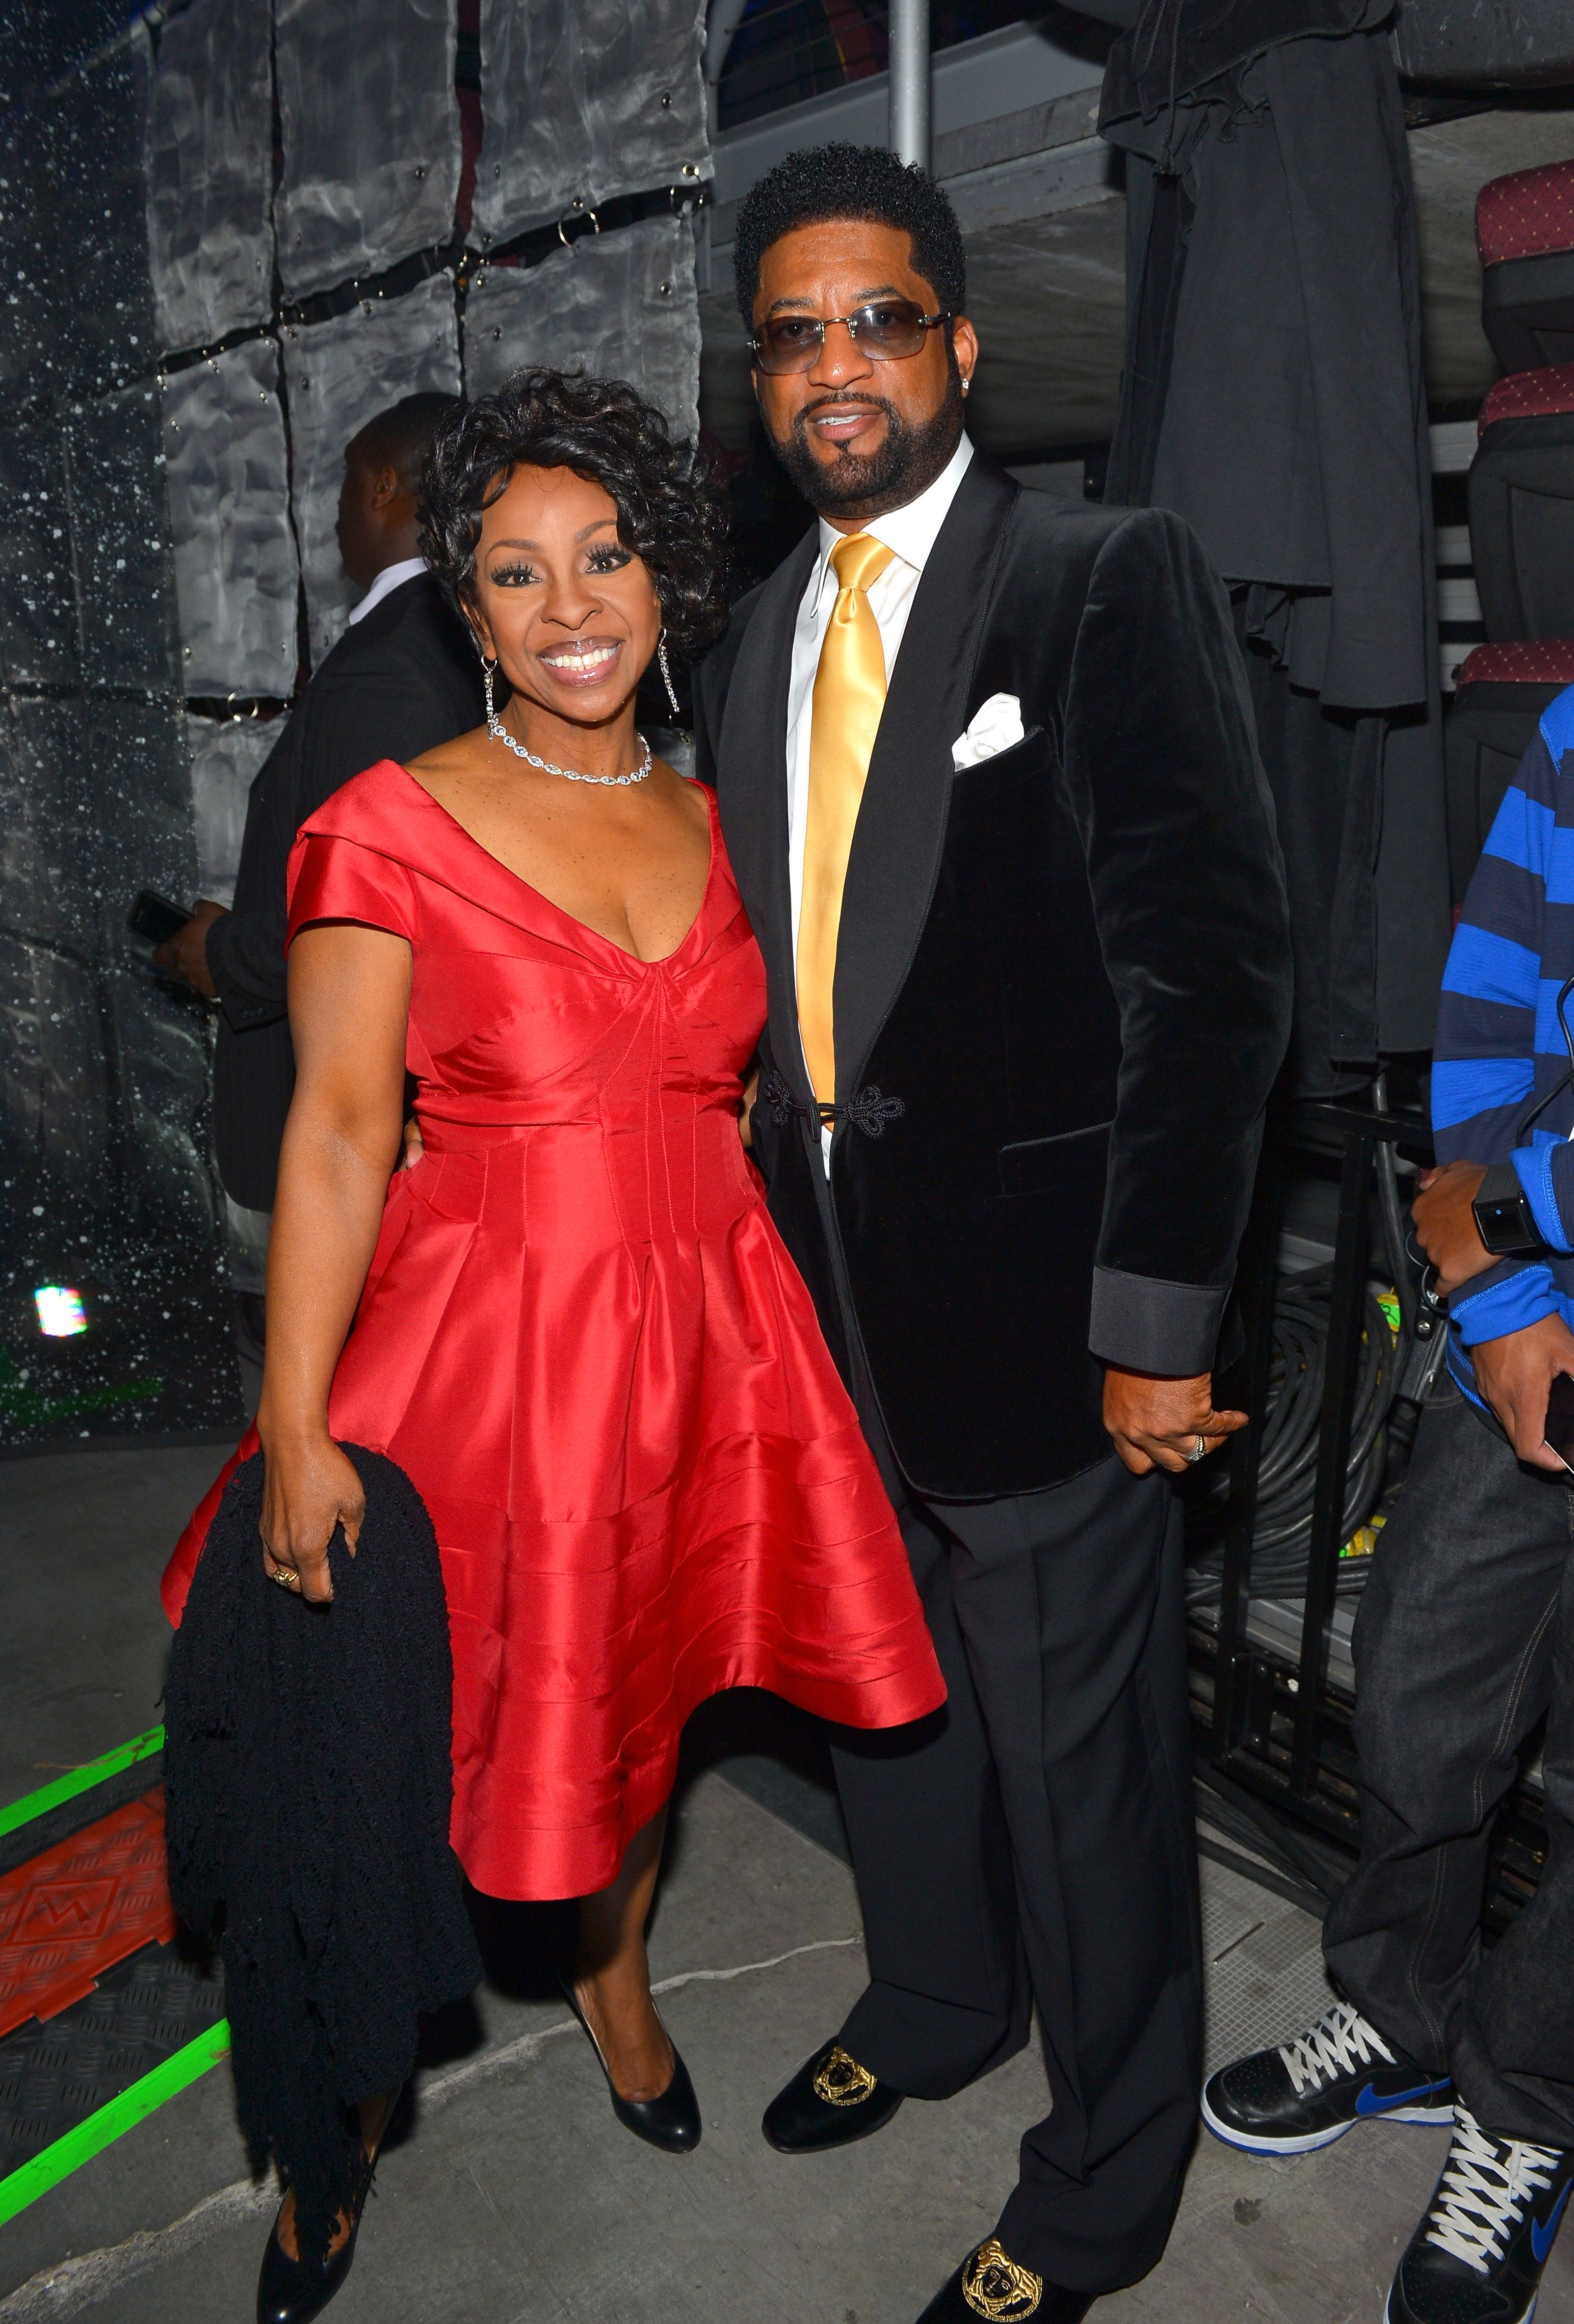 Gladys Knight and William McDowell at the Soul Train Awards in Las Vegas, Nevada in 2013 | Source: Getty Images